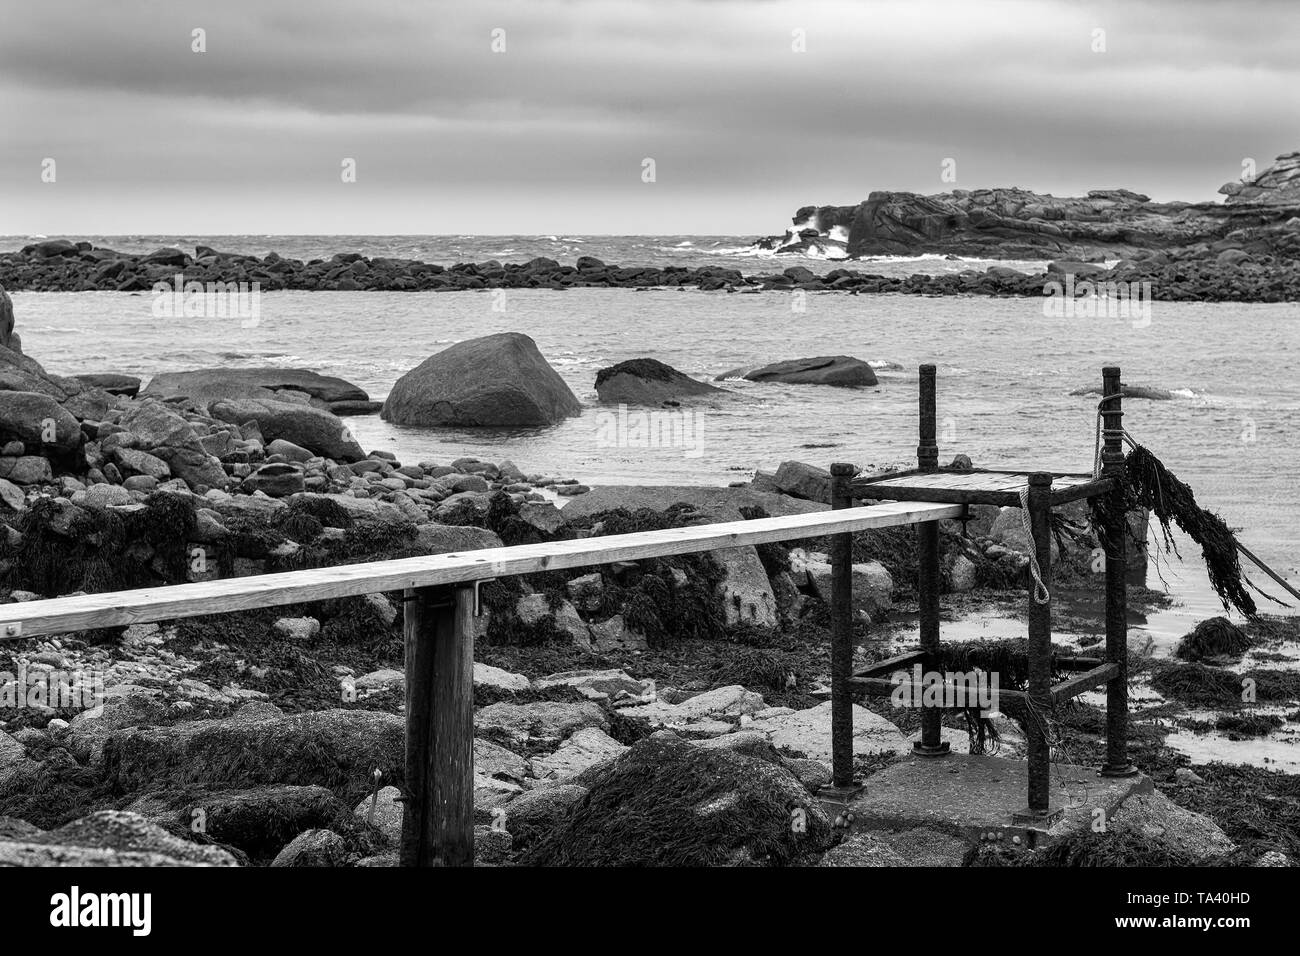 Rickety landing stage in Porth Hellick, St. Mary's, Isles of Scilly, UK: black and white version - Stock Image